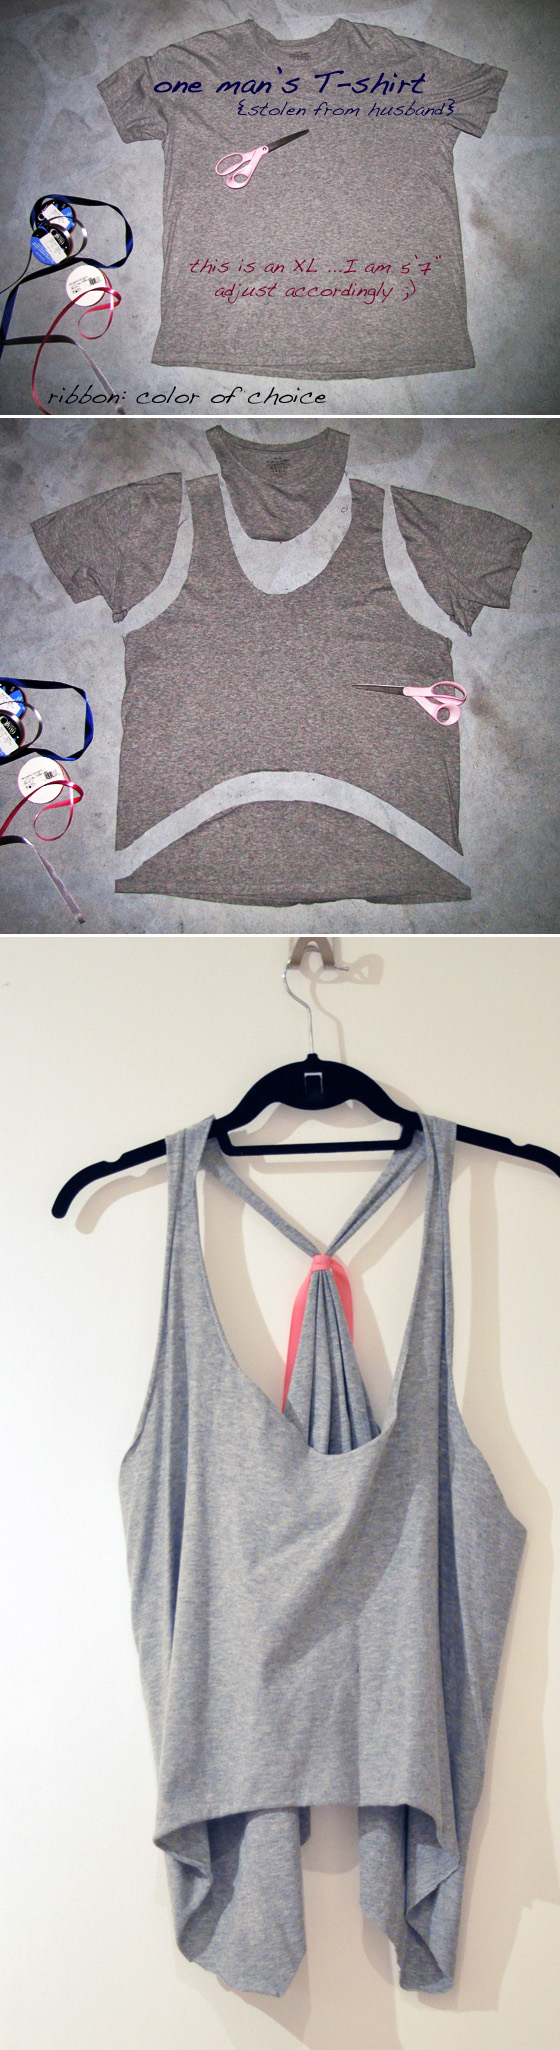 How To Make T Shirts Into Tank Tops 1